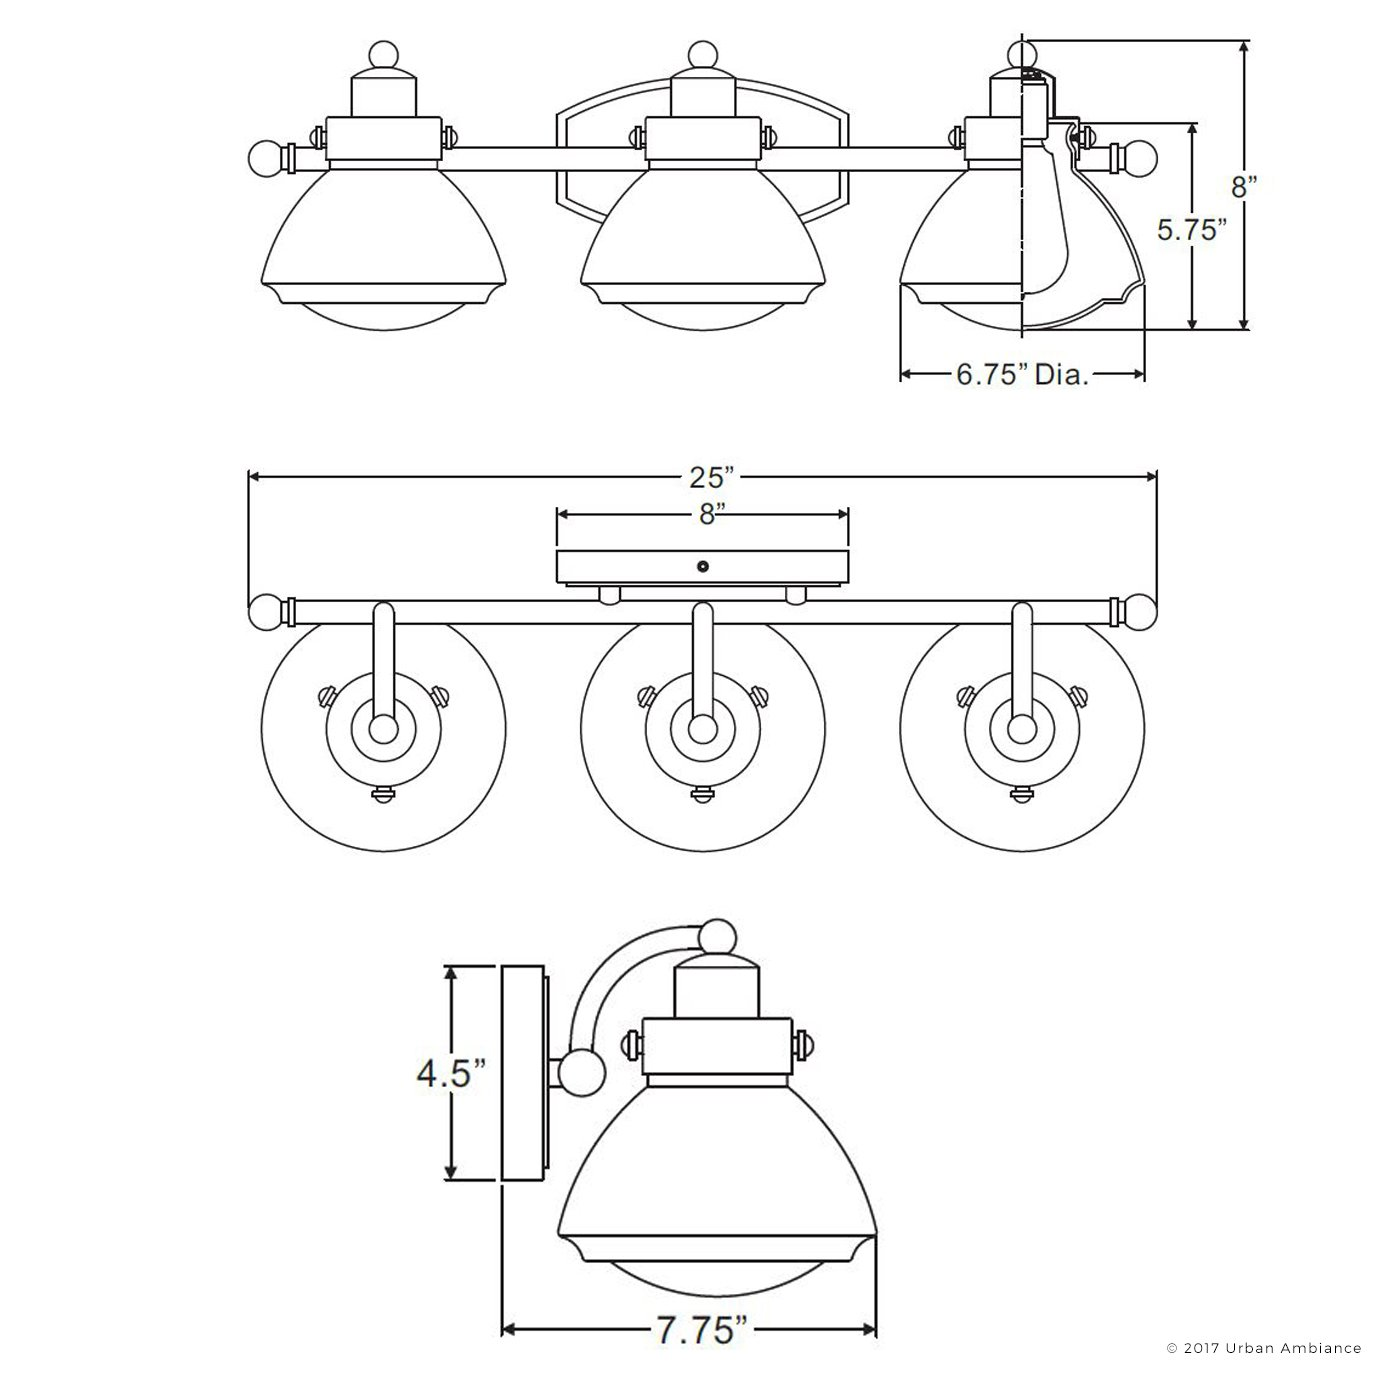 Luxury Transitional Bathroom Vanity Light, Medium Size: 8''H x 25''W, with Rustic Style Elements, Oil Rubbed Parisian Bronze Finish and Seeded Schoolhouse Glass, UQL2652 by Urban Ambiance by Urban Ambiance (Image #7)